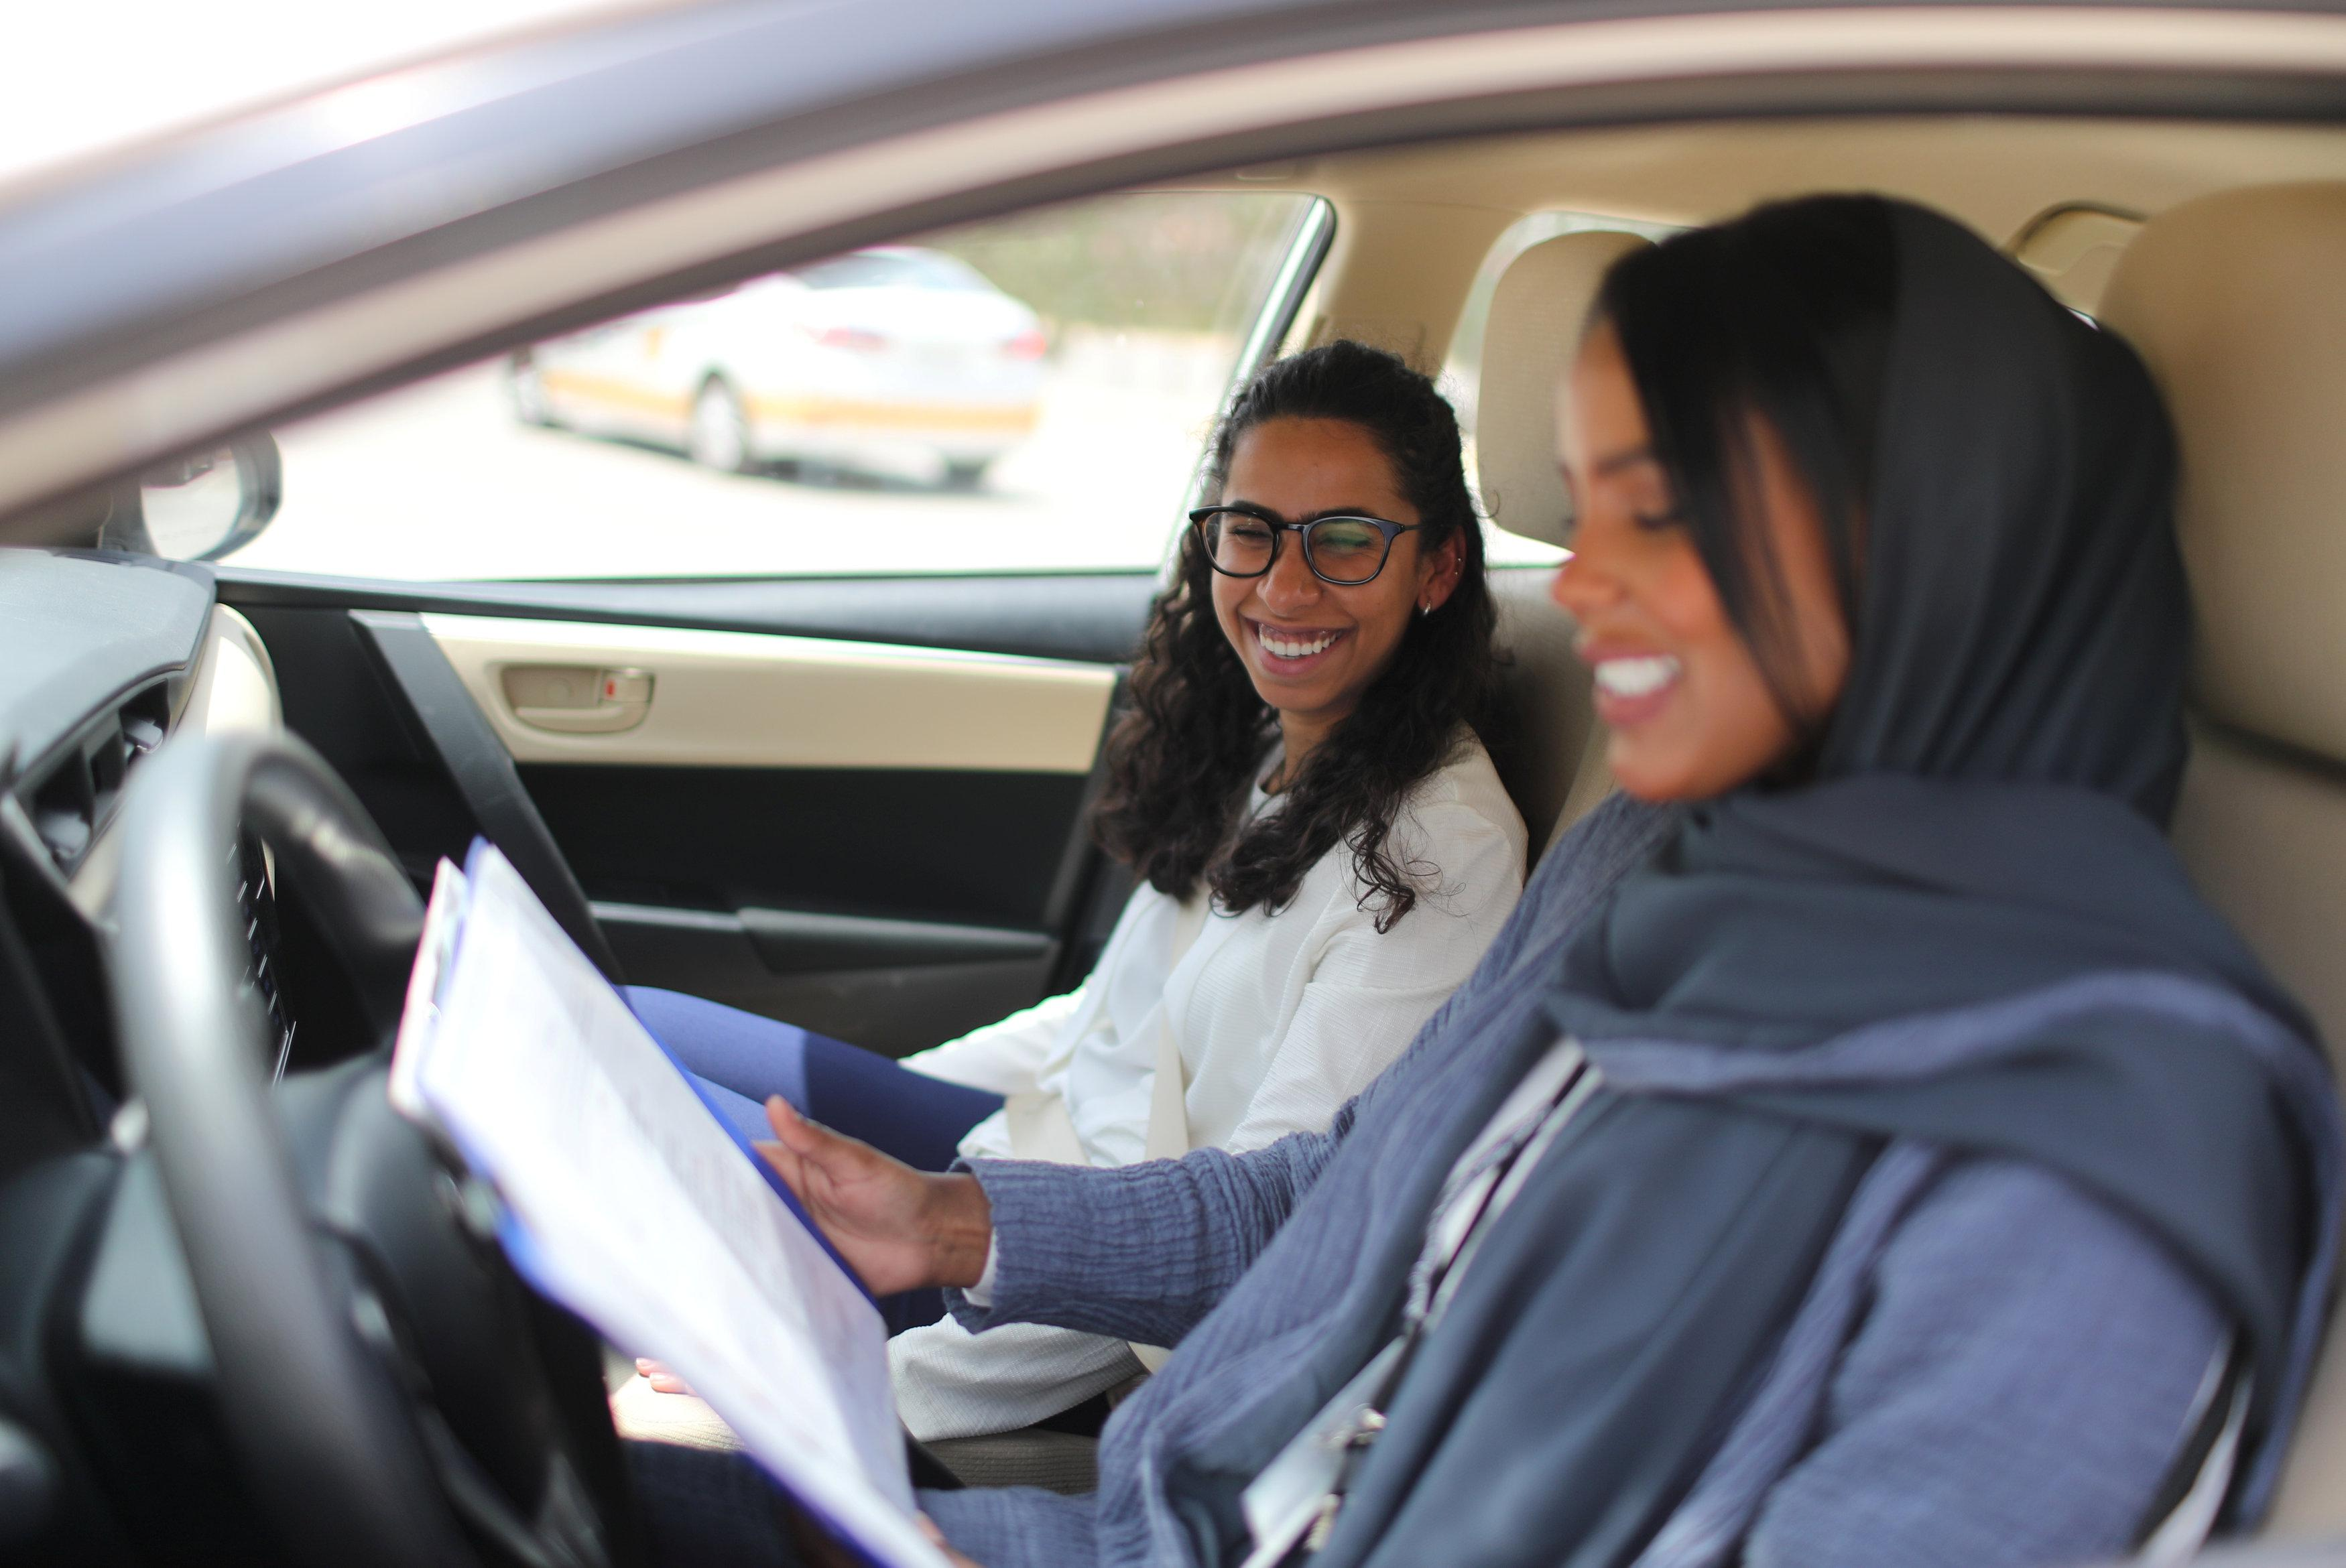 Driving instructor Ahlam al-Somali (R) reads instructions before getting ready to drive with trainee Maria al-Faraj at Saudi Aramco Driving Center in Dhahran, Saudi Arabia, June 6, 2018. Ahmed Jadallah